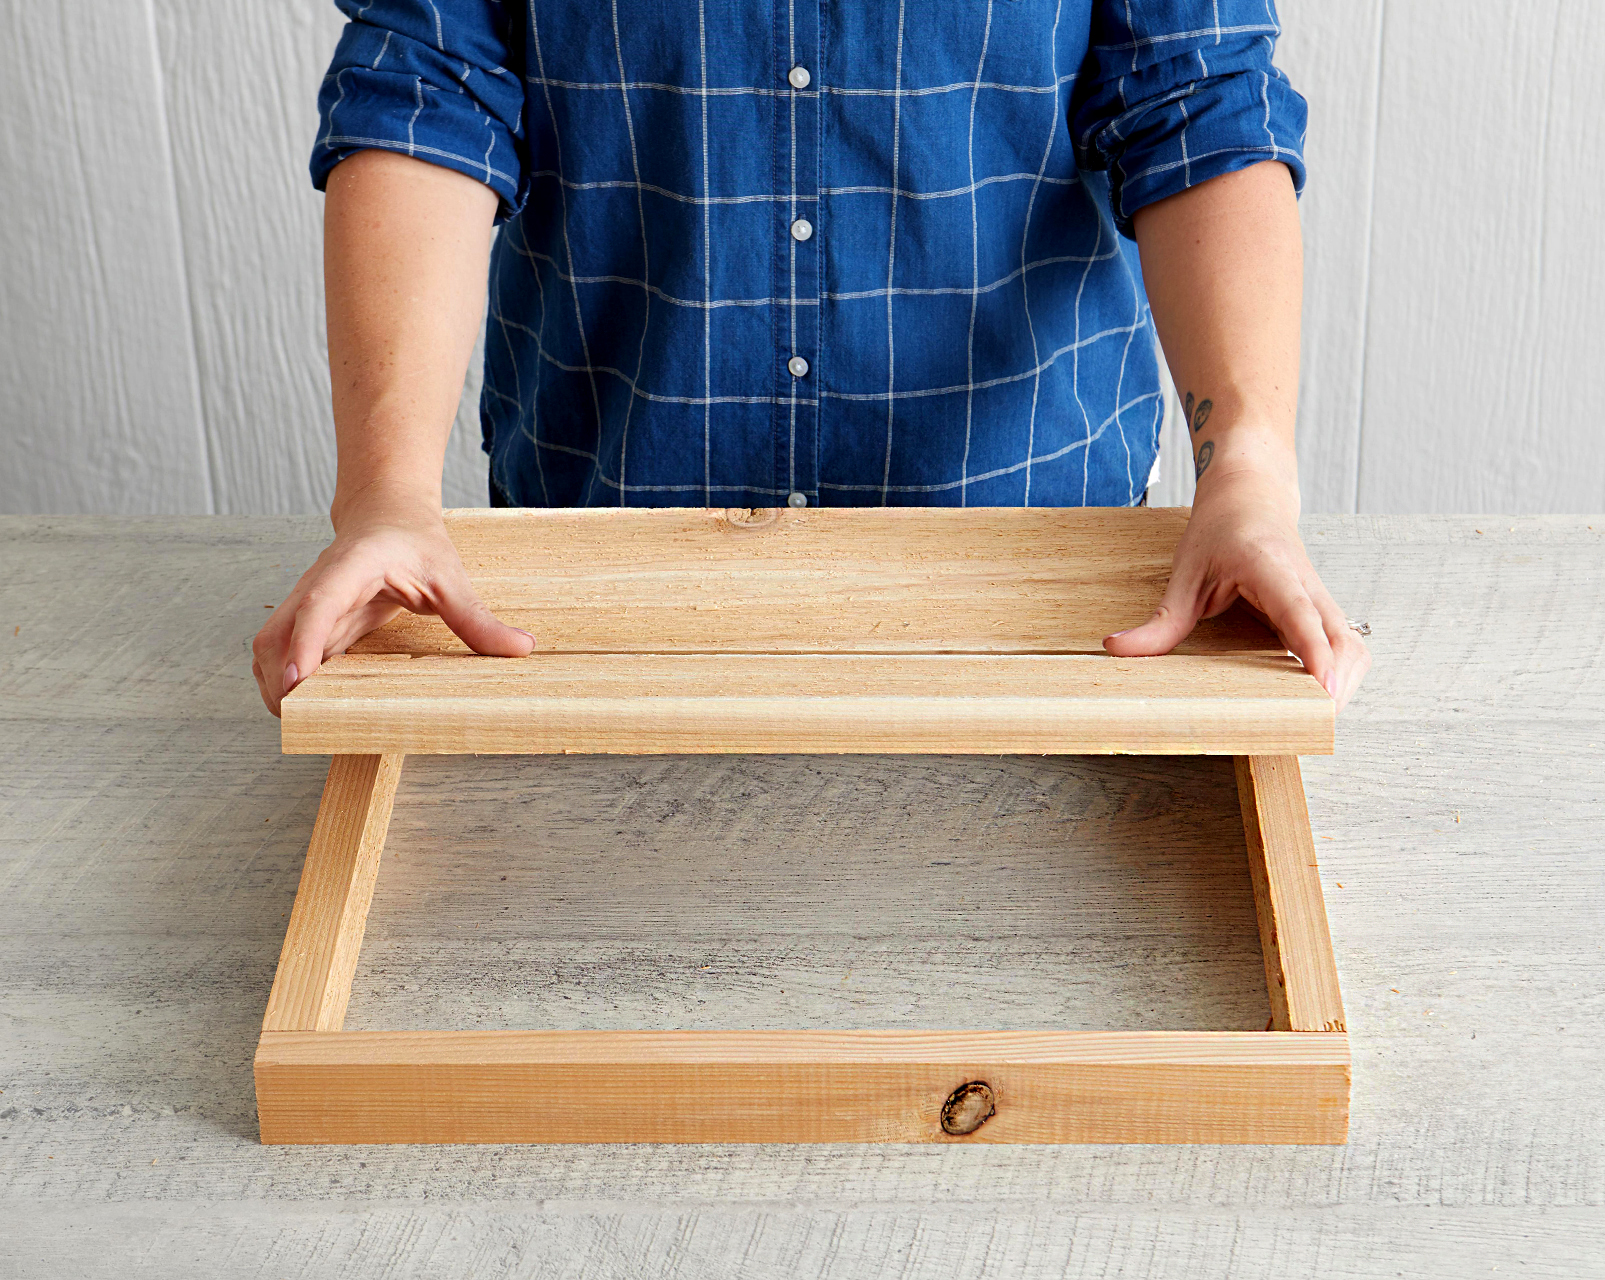 place three boards on top of frame